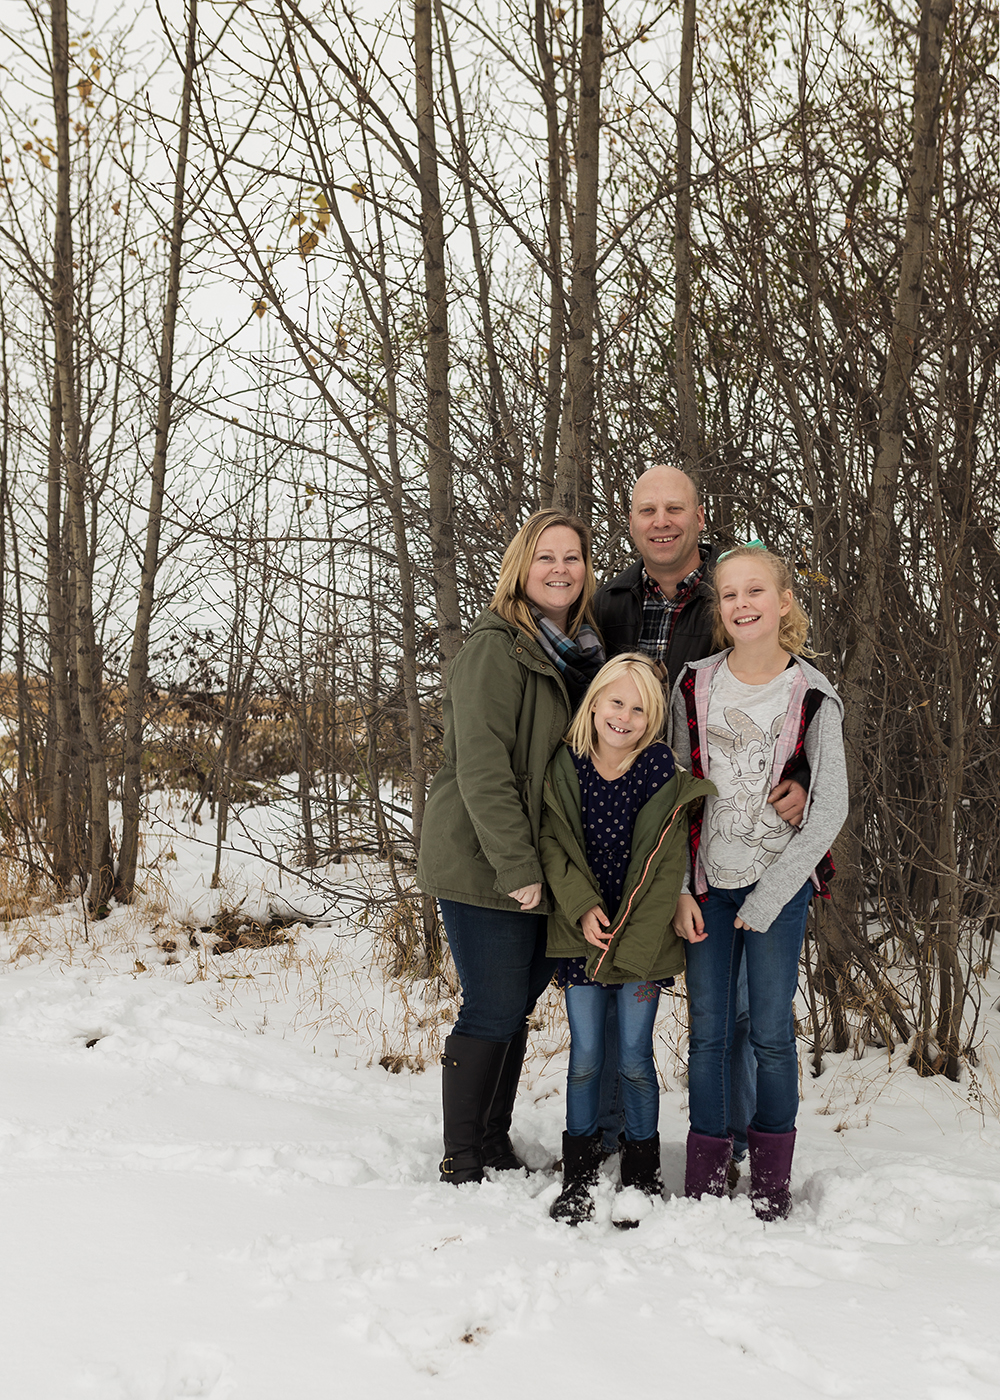 Edmonton Family Photographer_Wiles Sneak Peek 2.jpg